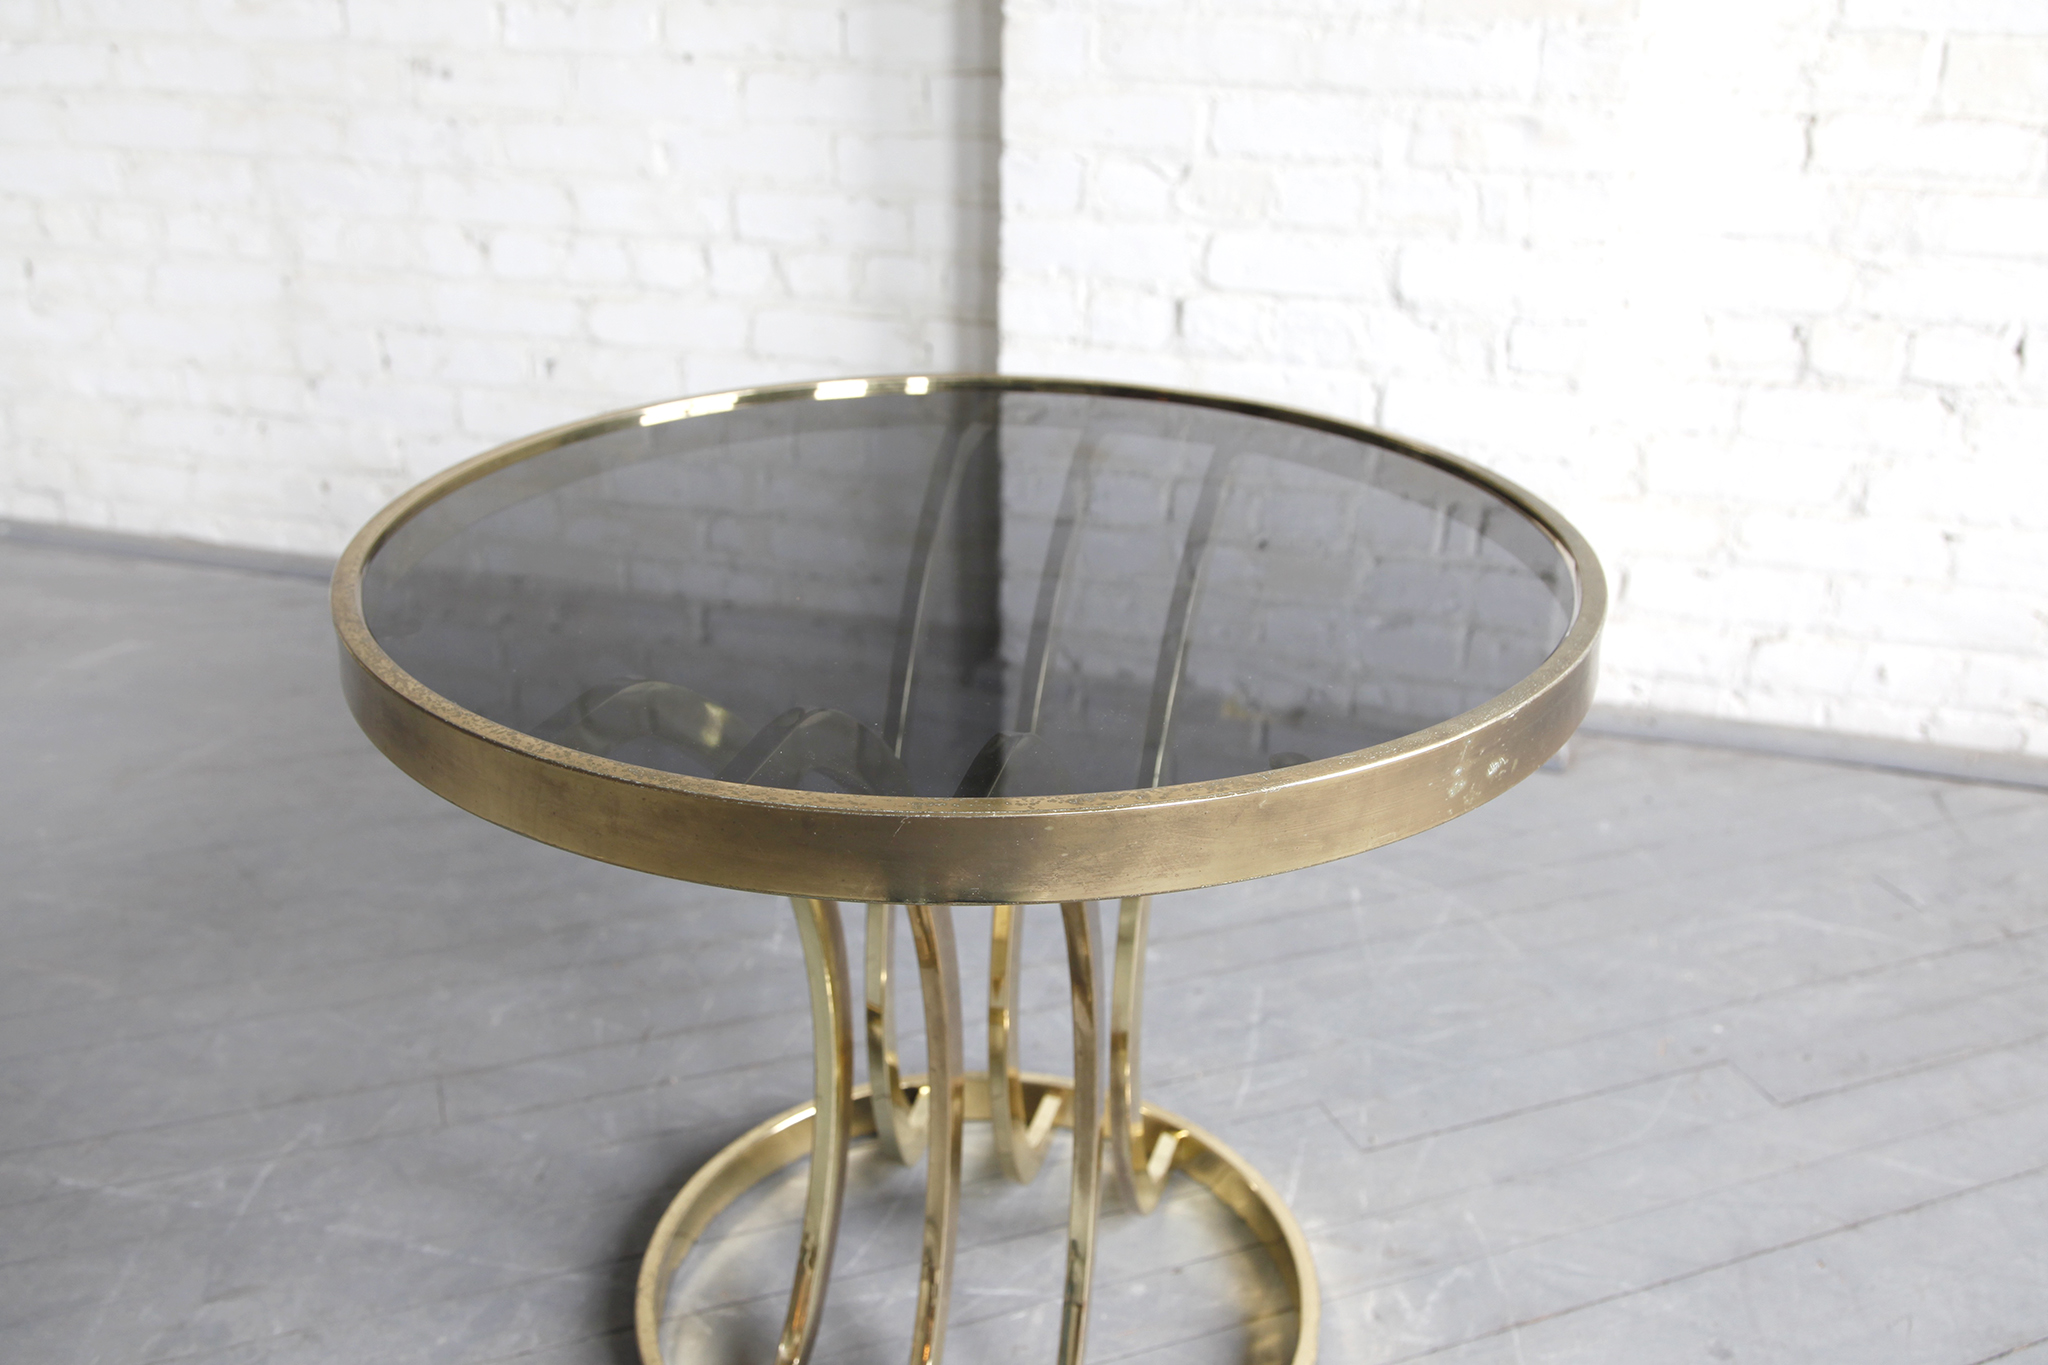 sold mid century modern hollywood regency round brass and glass